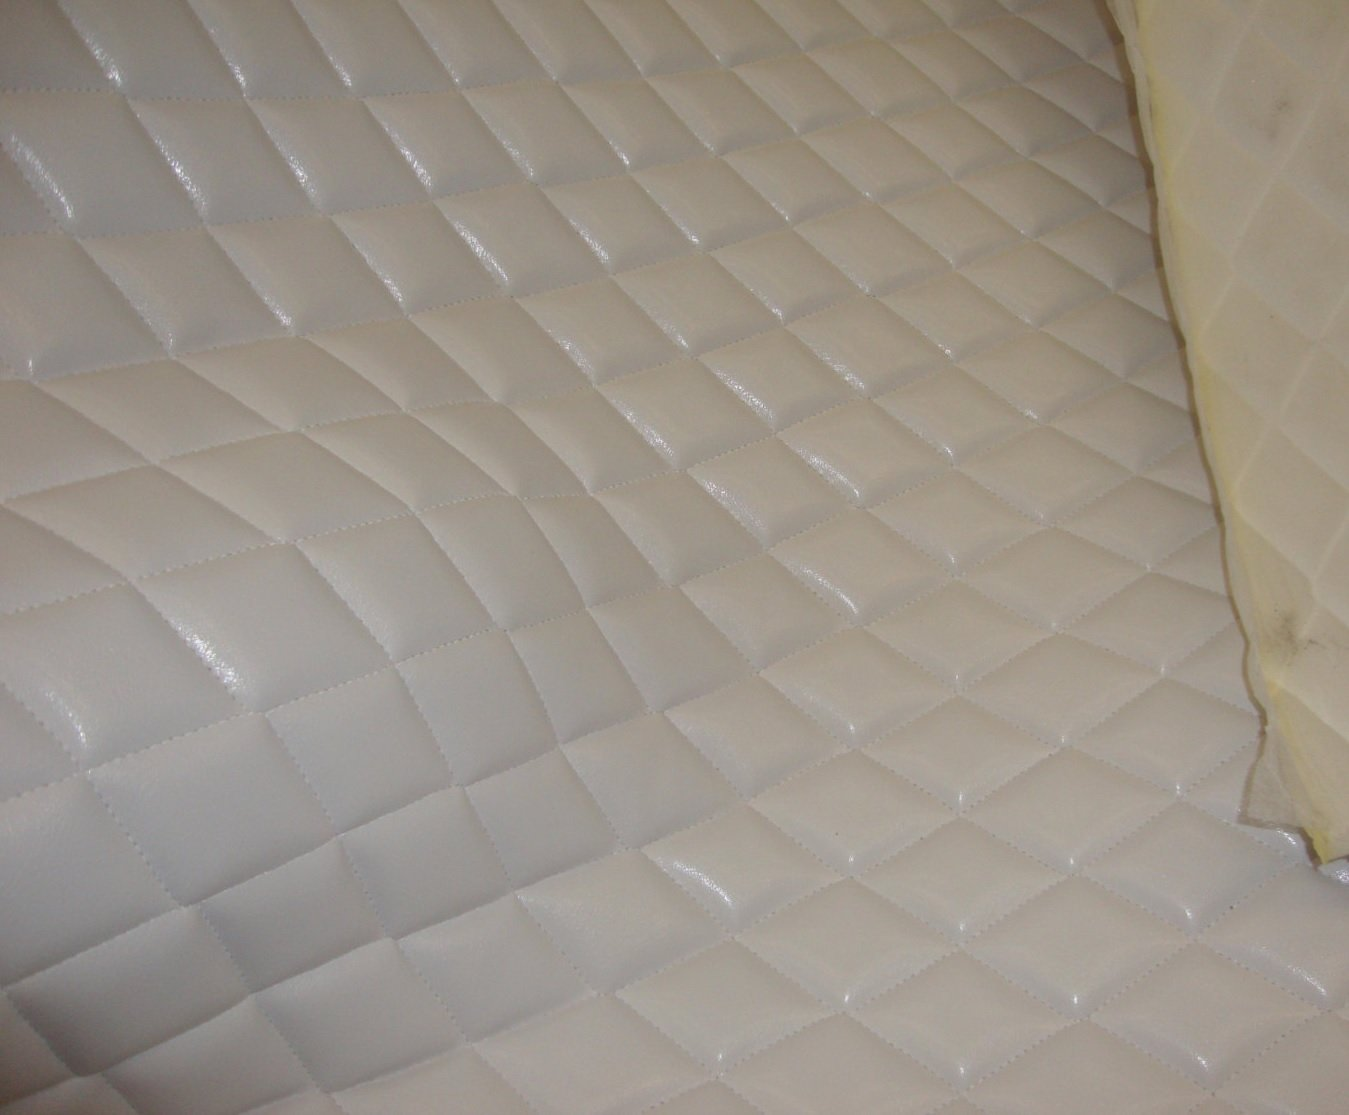 "luvfabrics White Faux Leather Quilted Vinyl Fabric with 3/8"" Foam Backing Upholstery"